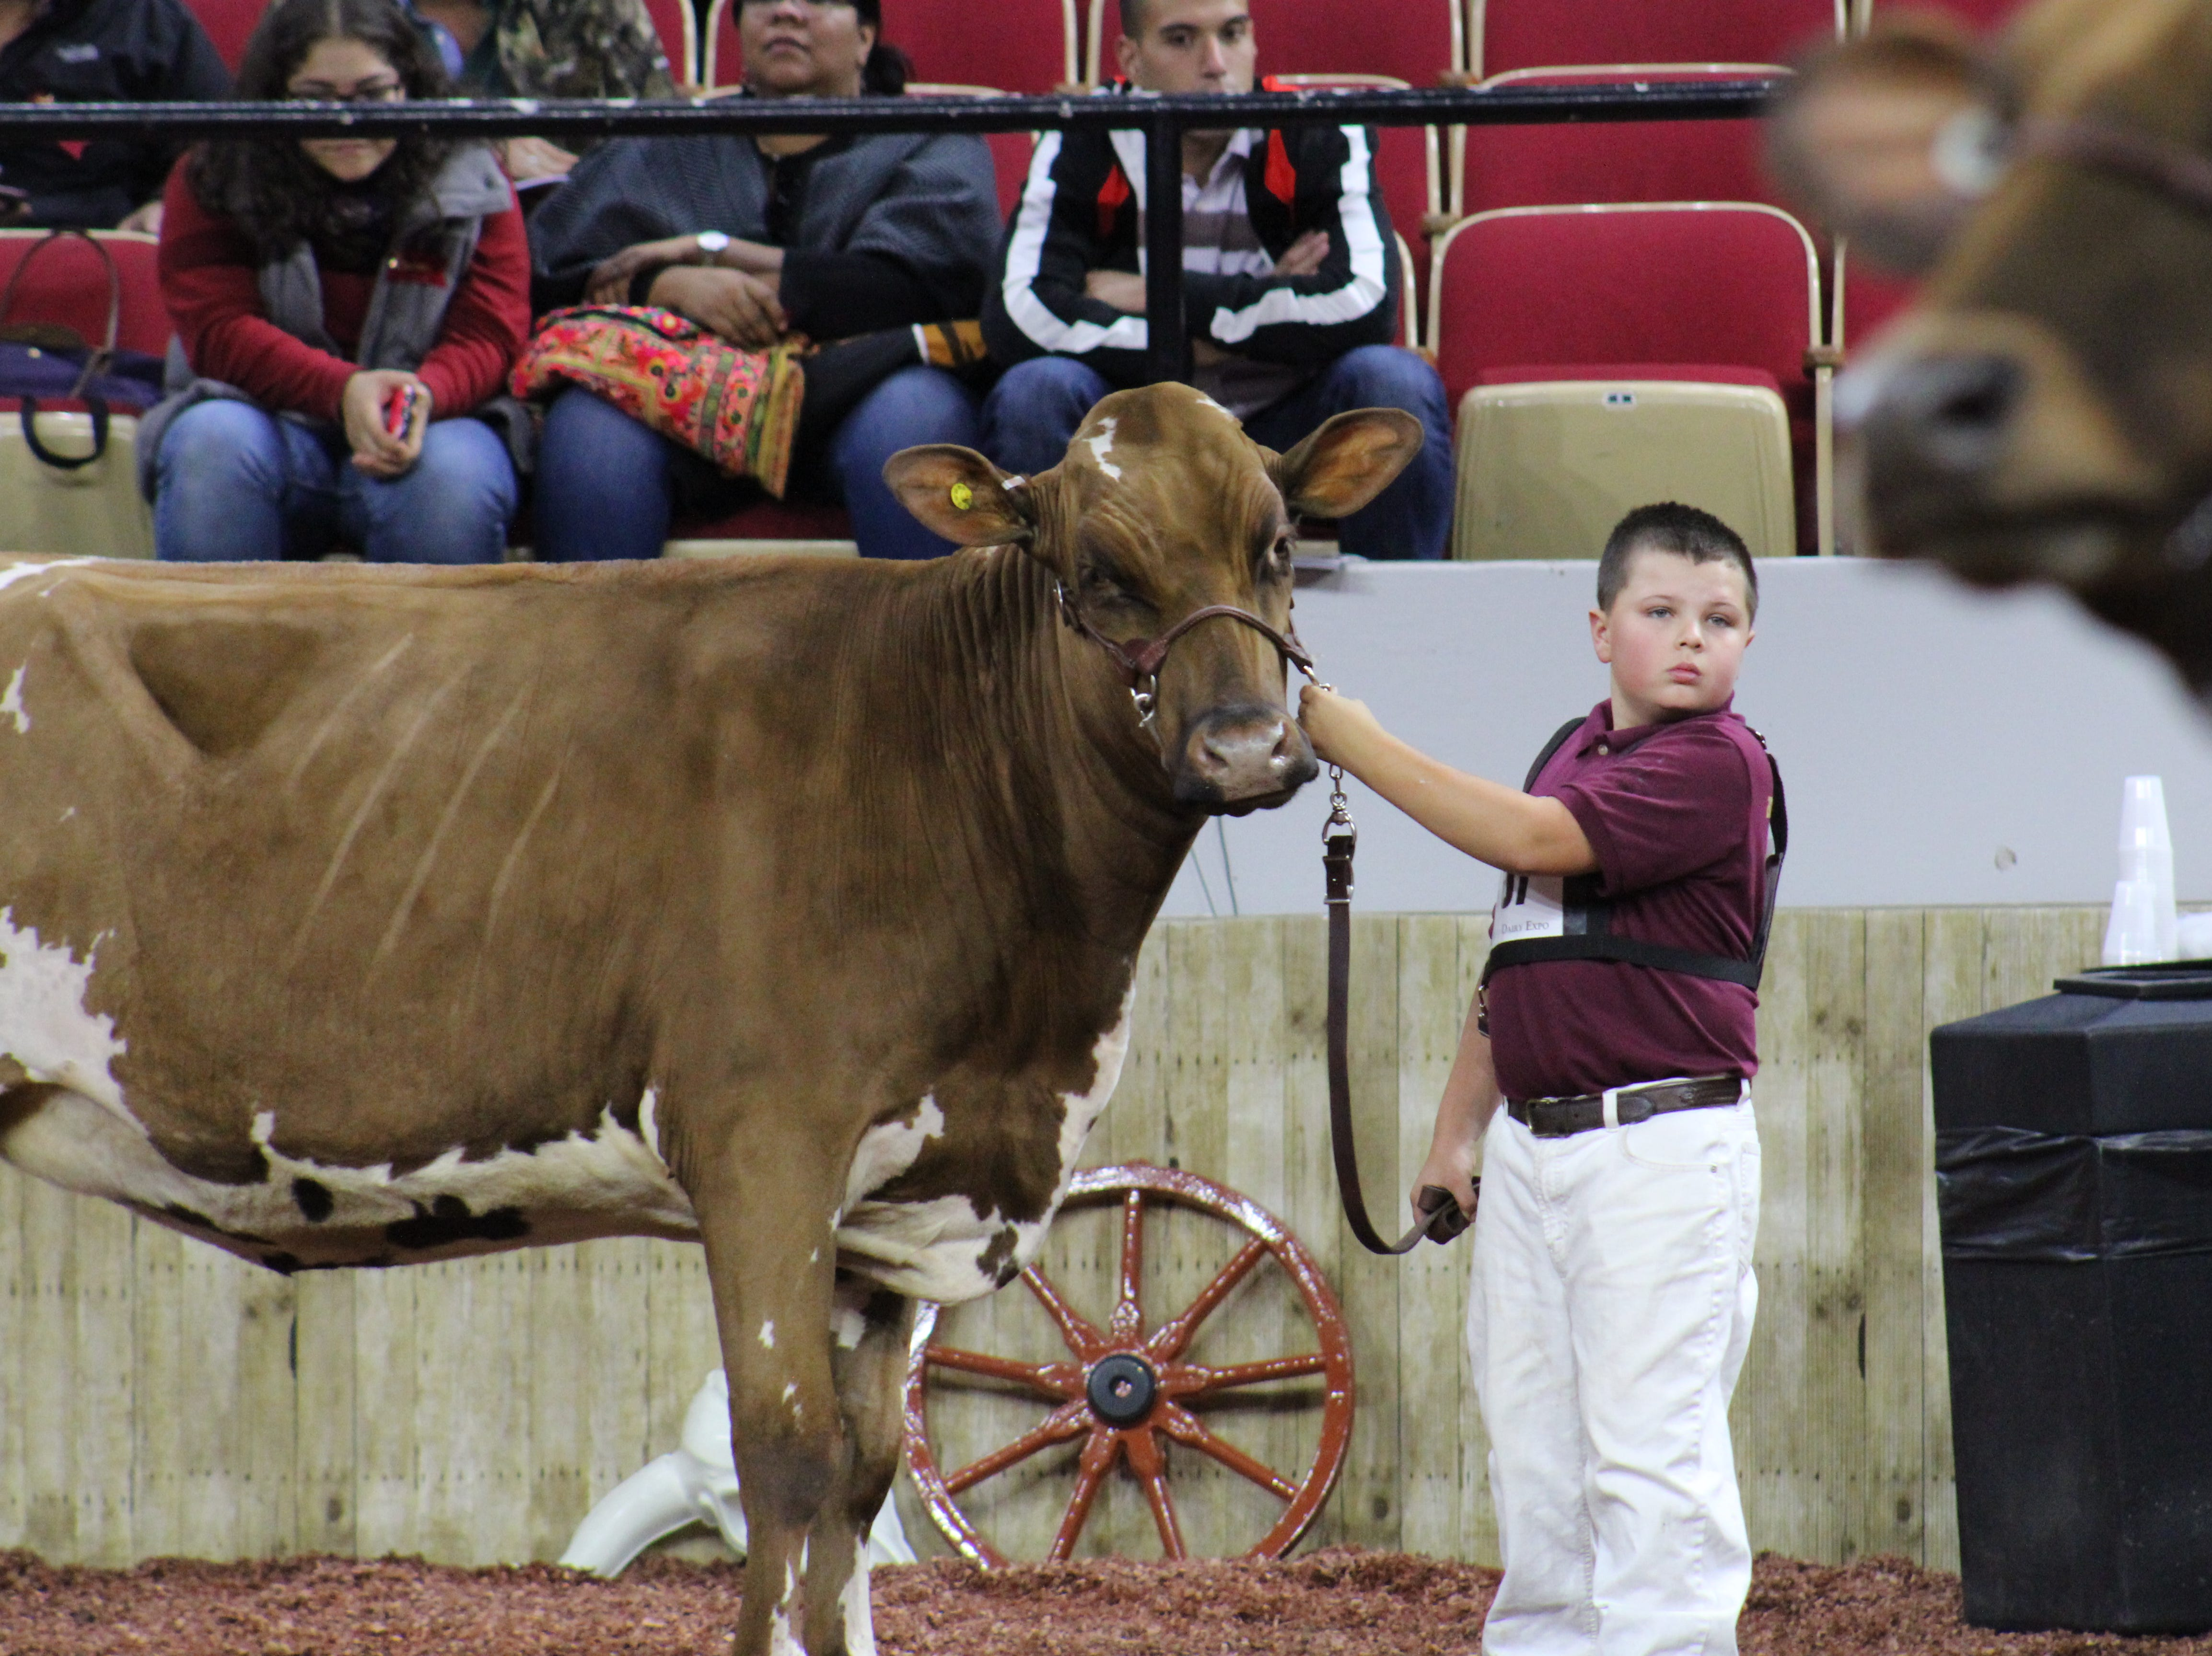 Even the youngest exhibitors are skilled in showing their animals.